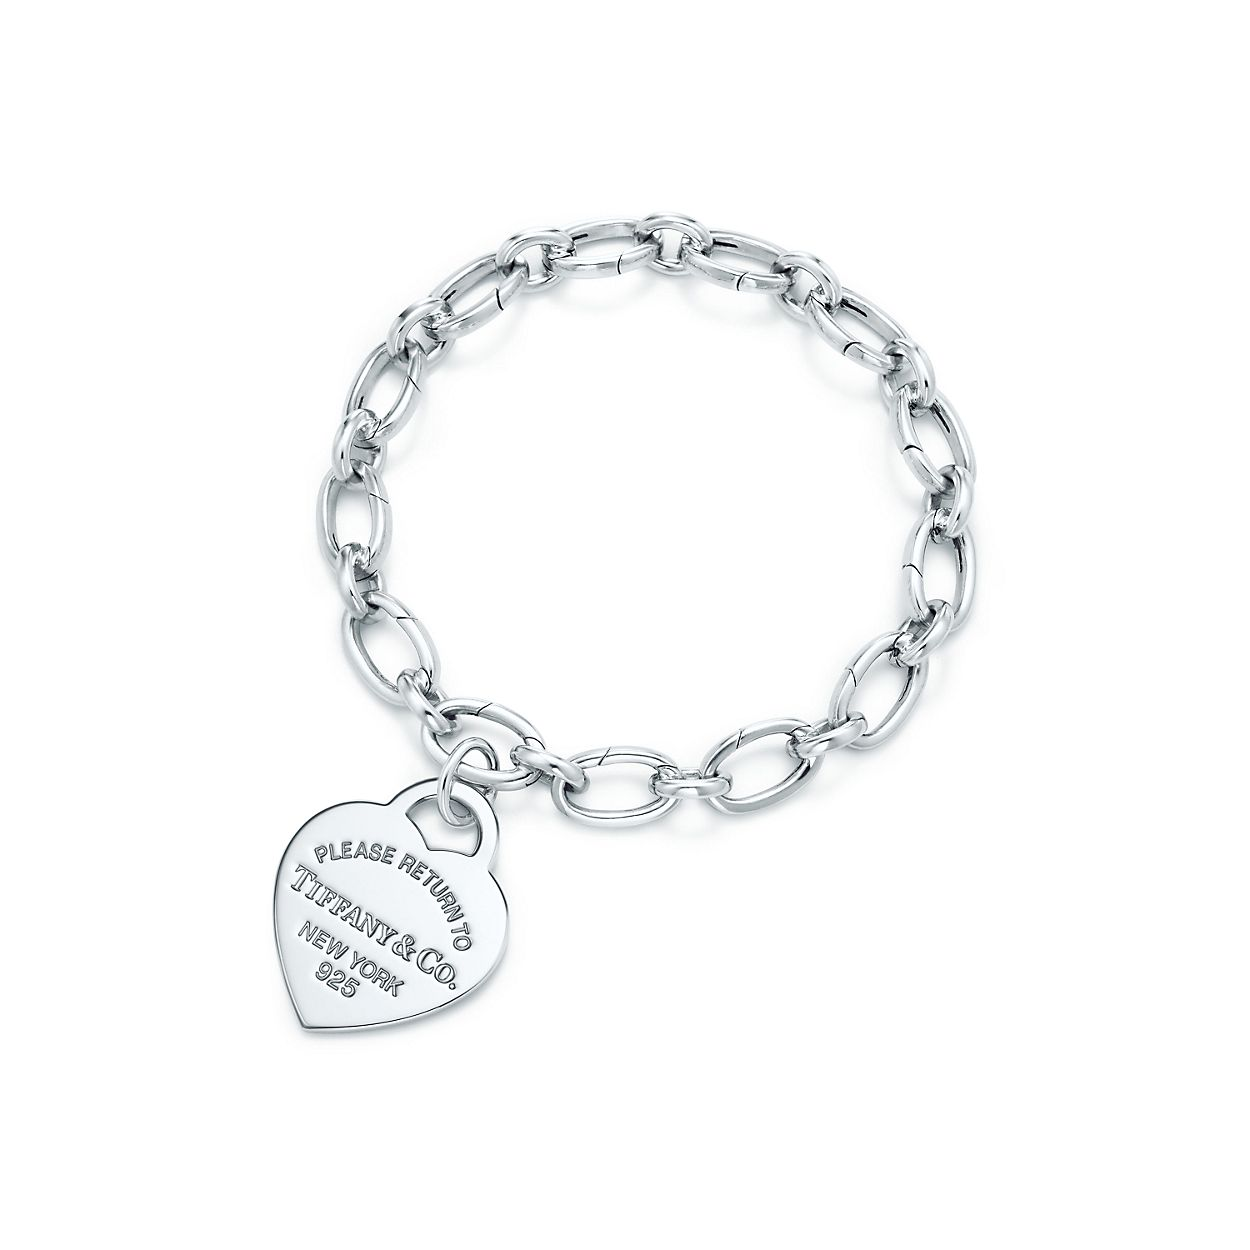 Return To Tiffany Heart Tag Charm And Bracelet